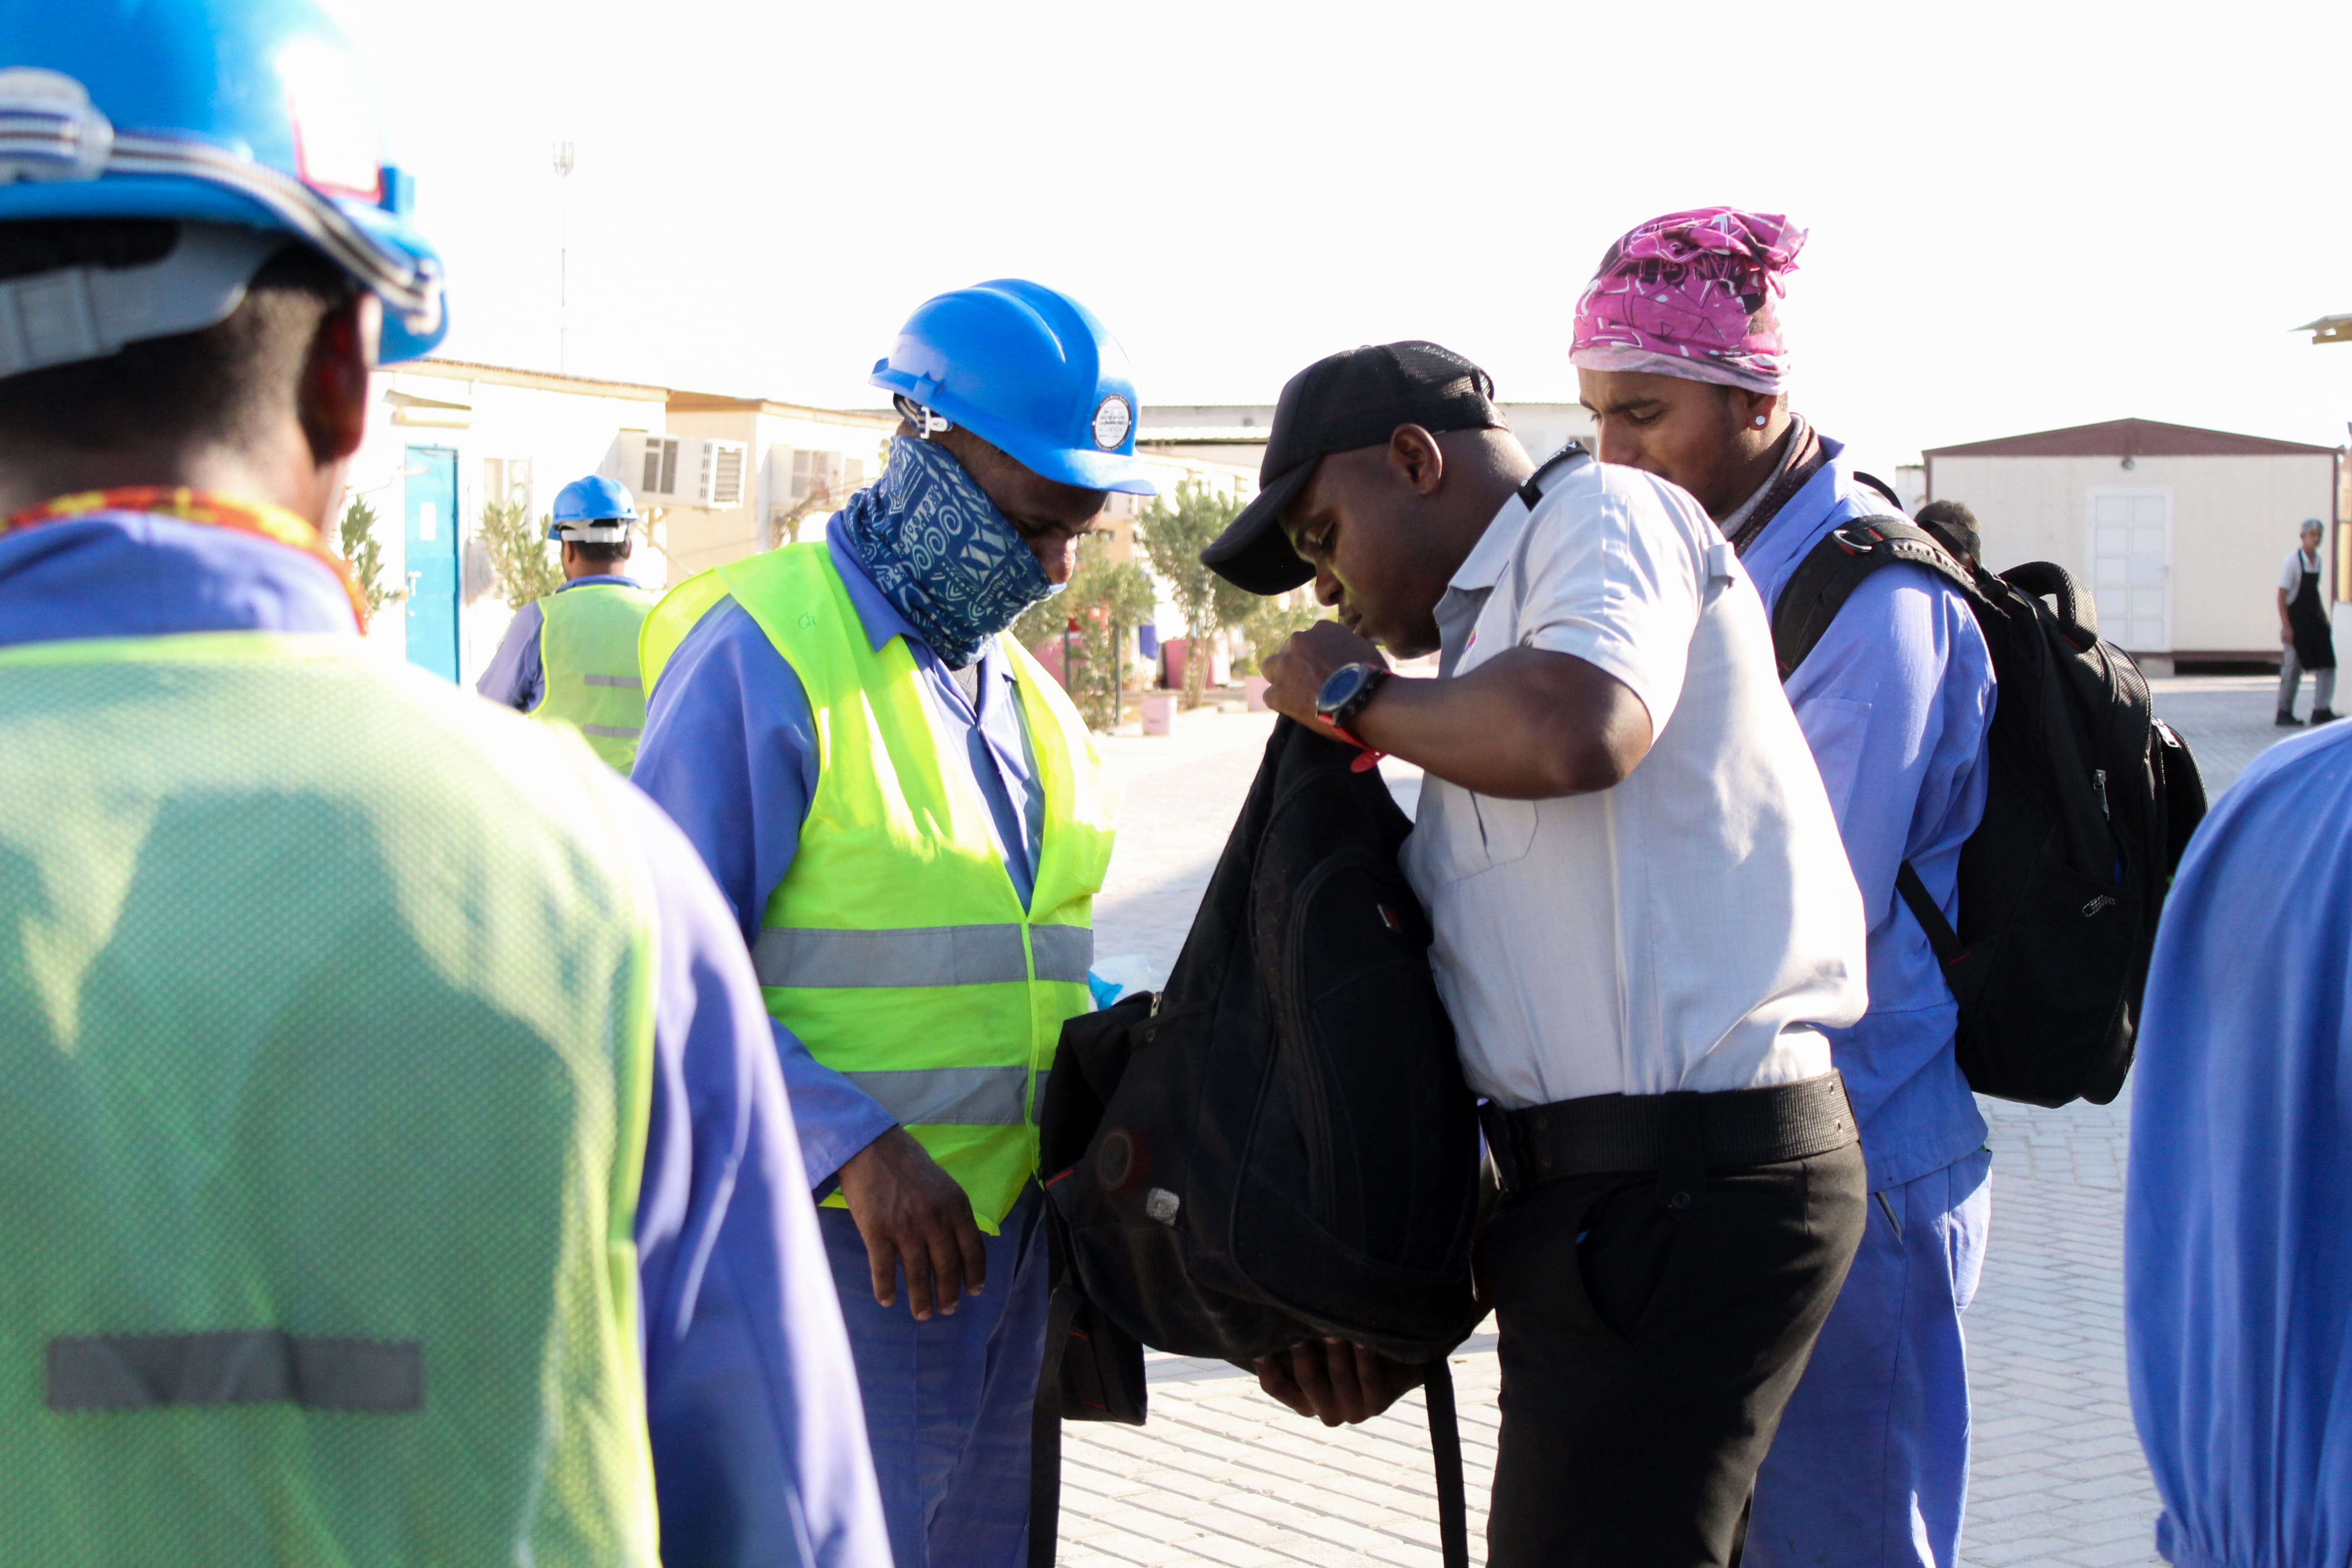 SECURITY INSPECTING WORKERS